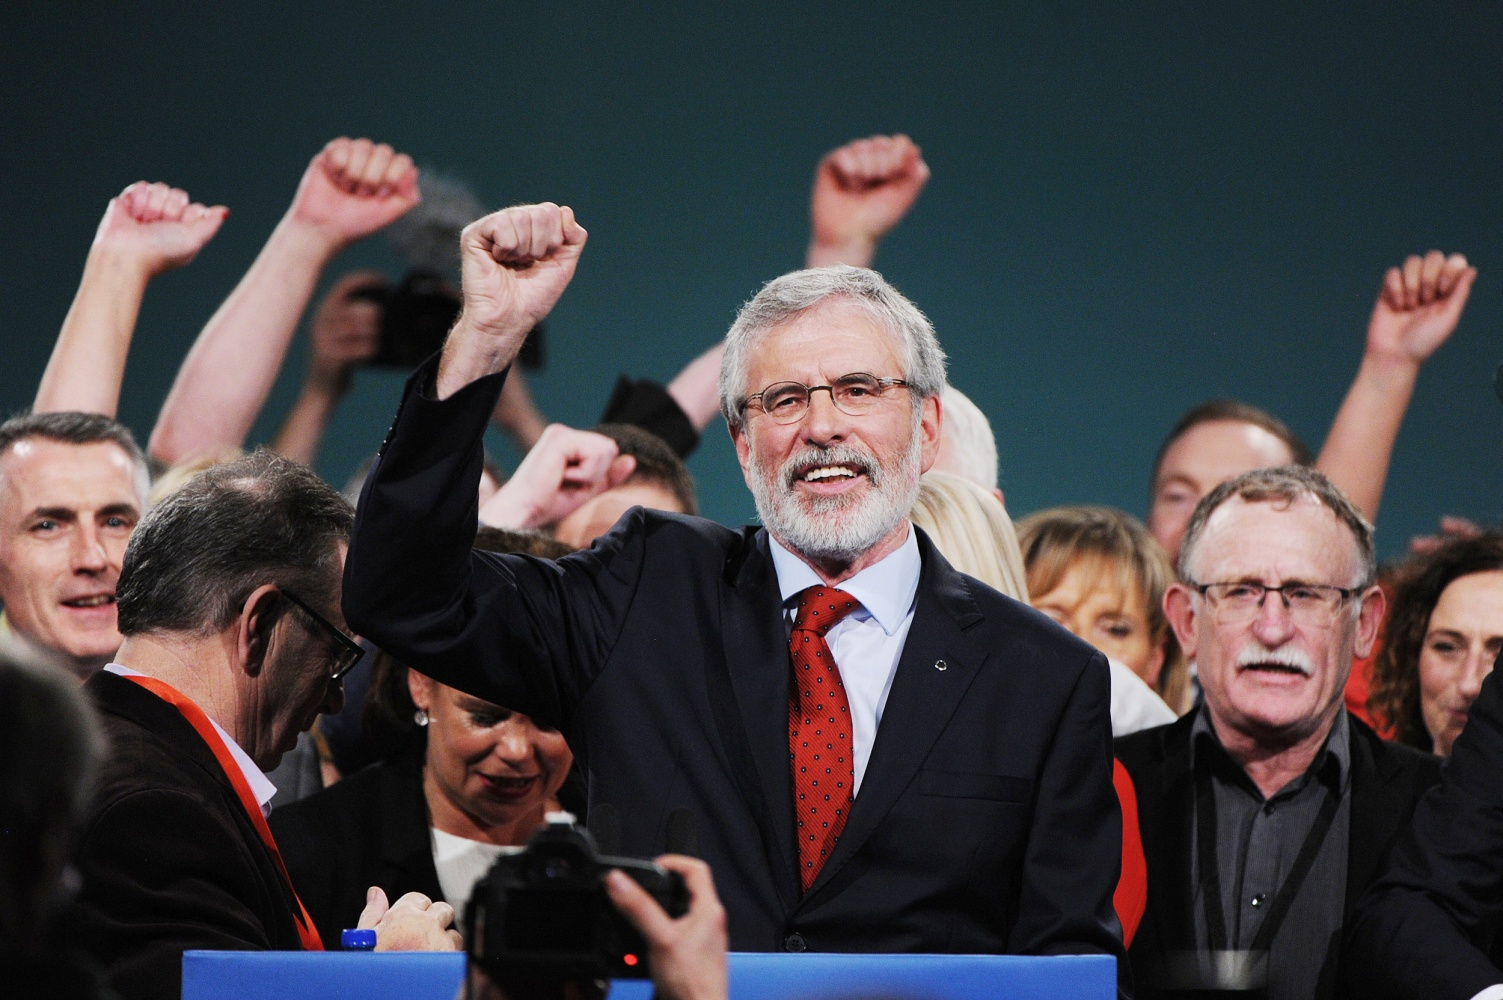 Louth TD Gerry Adams to set out retirement plans